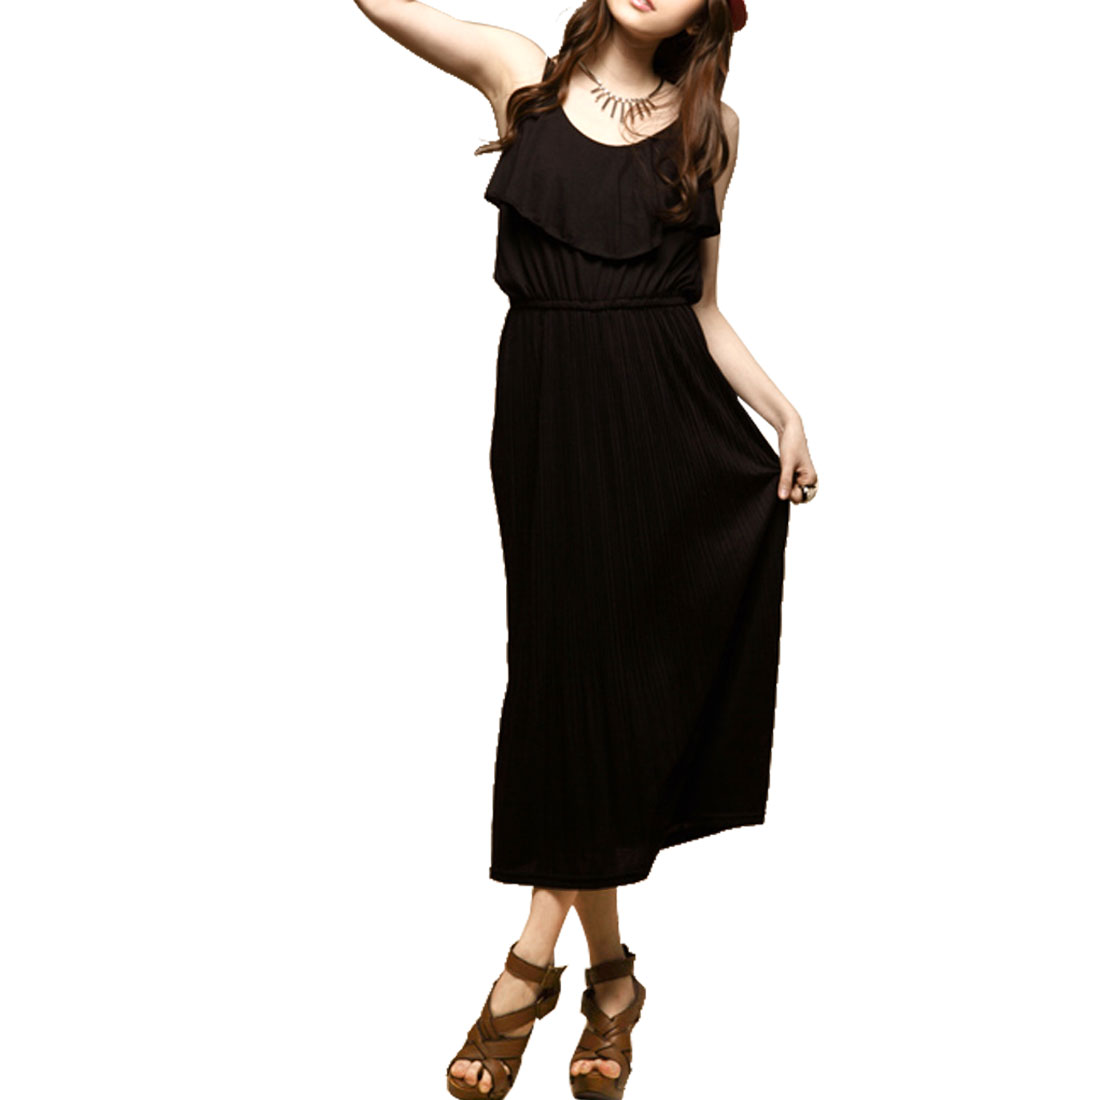 Women Summer Black Stretchy Waist Full-length Accordion Dress XS